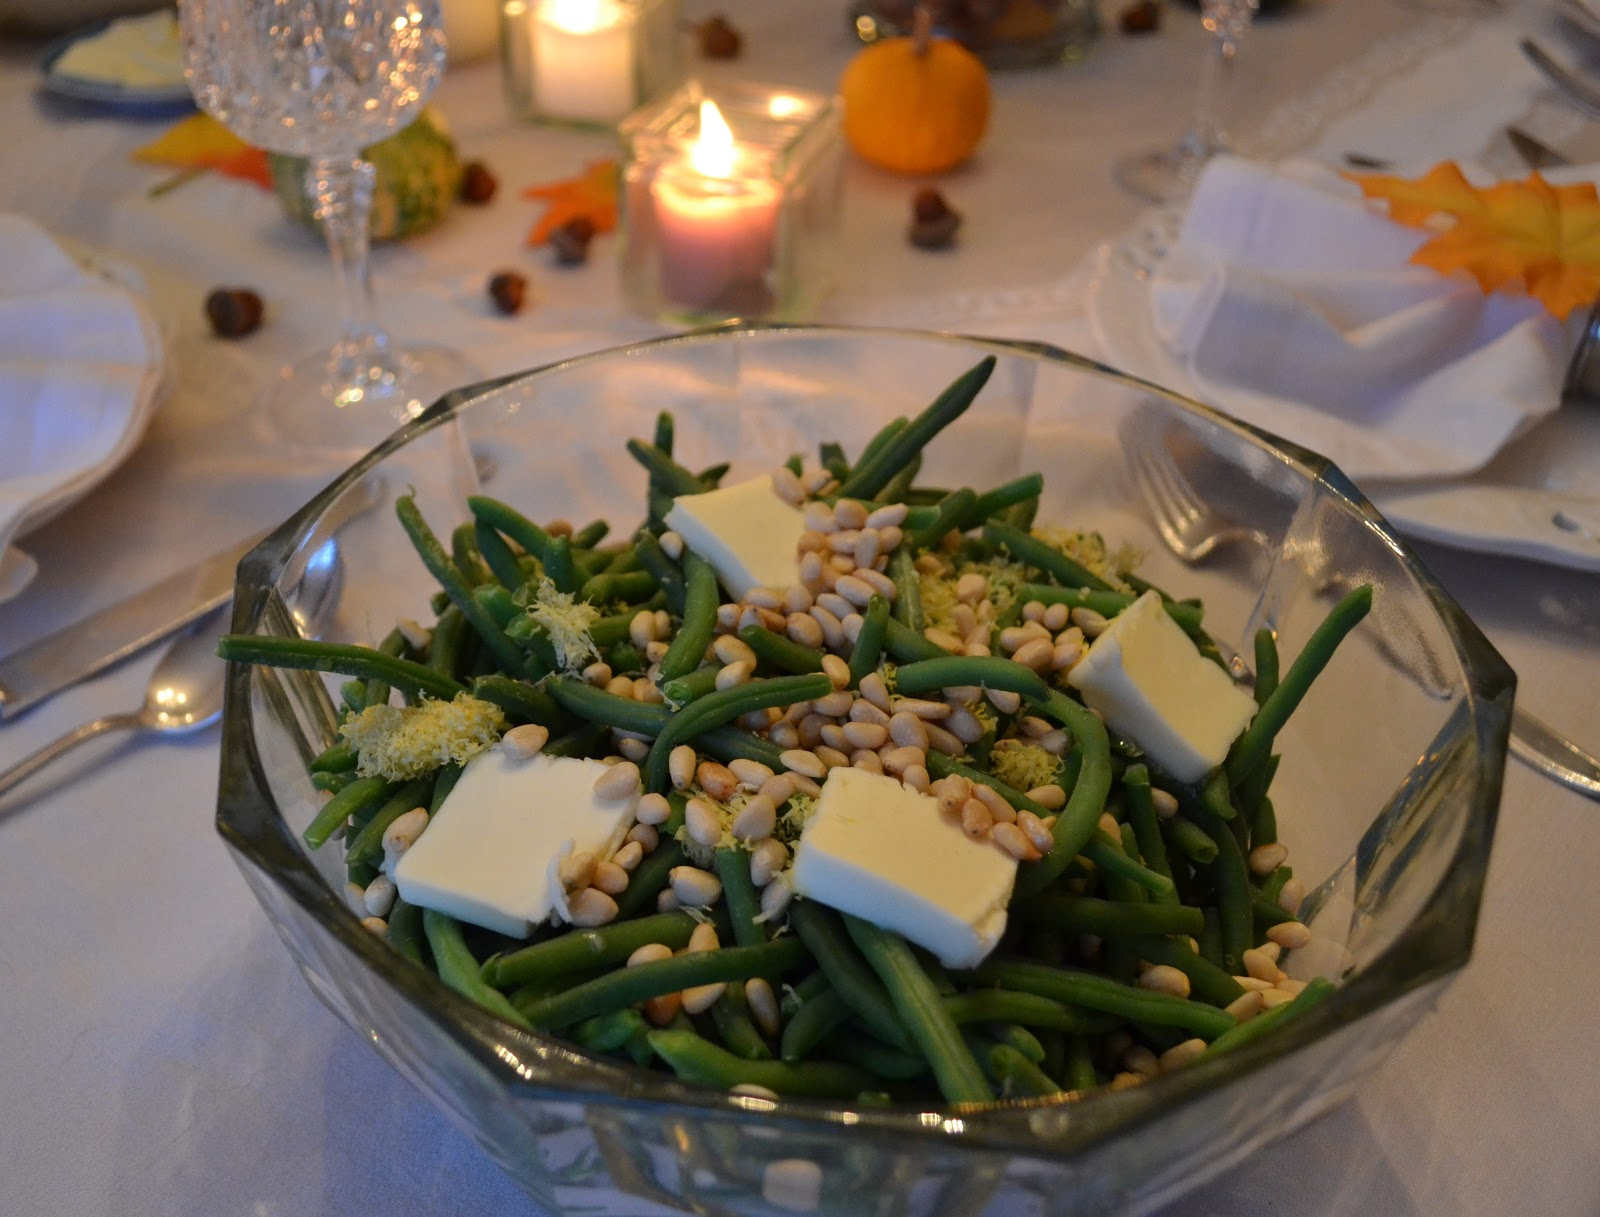 Haricot Verts with Lemon Zest and Pine Nuts